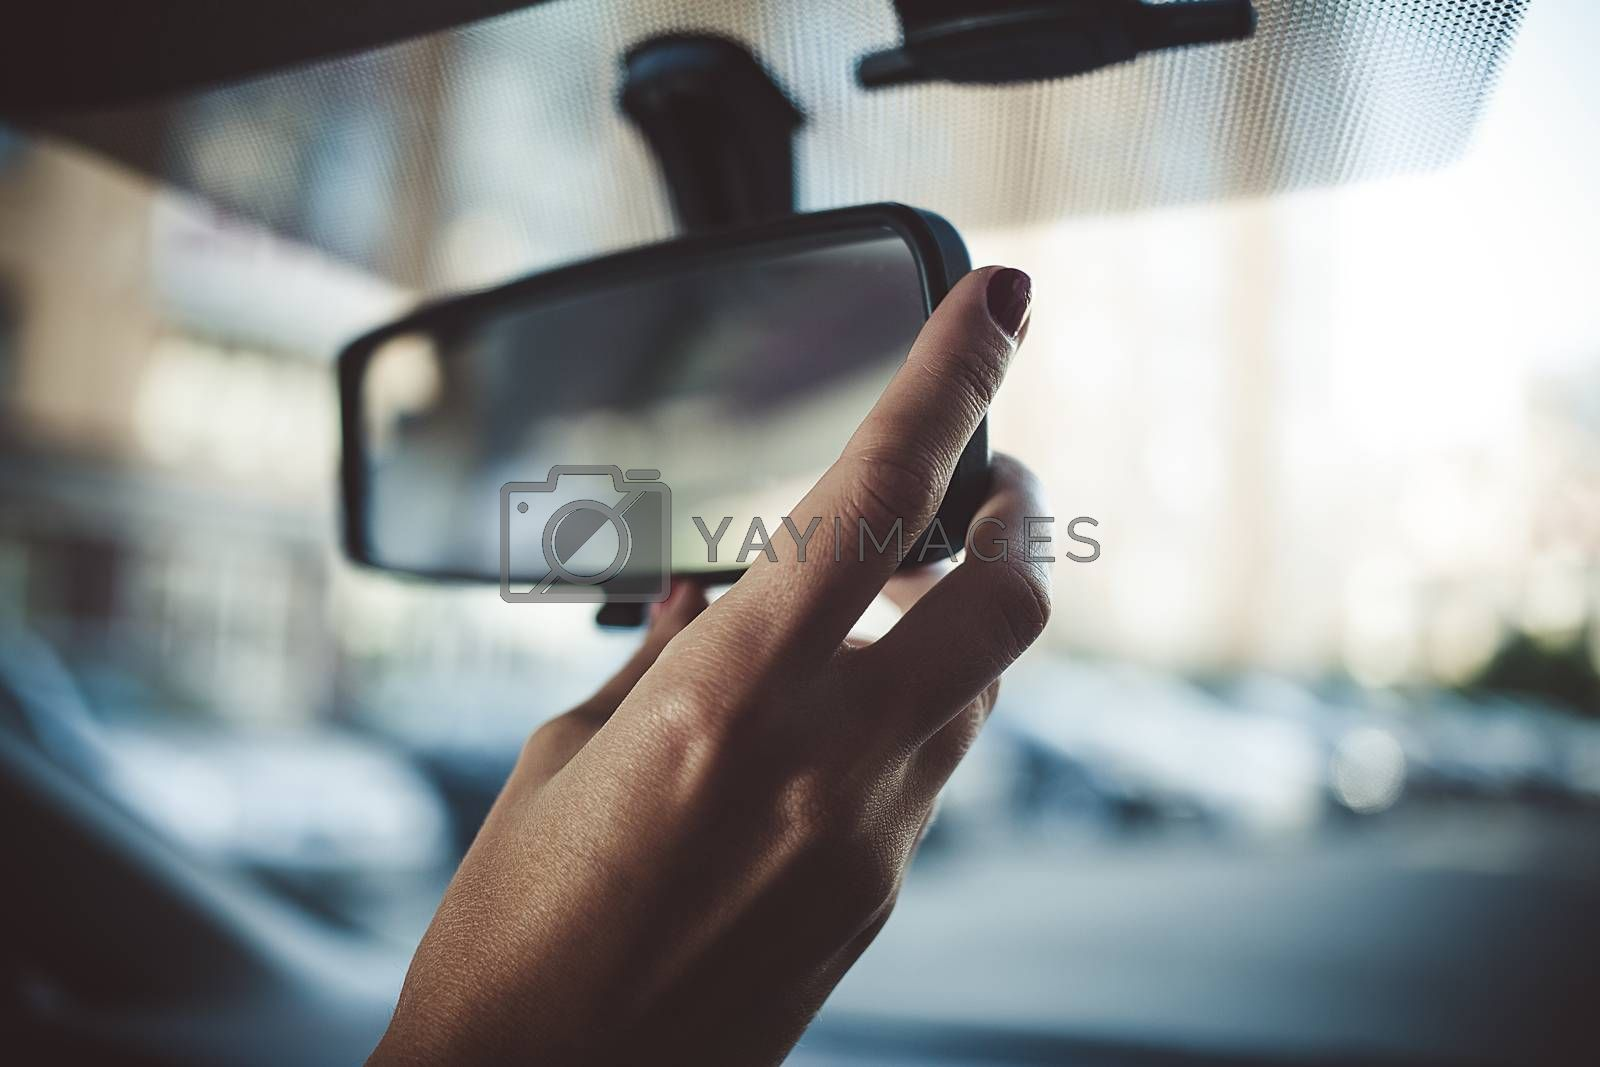 A man is driving a rear-view mirror in the car